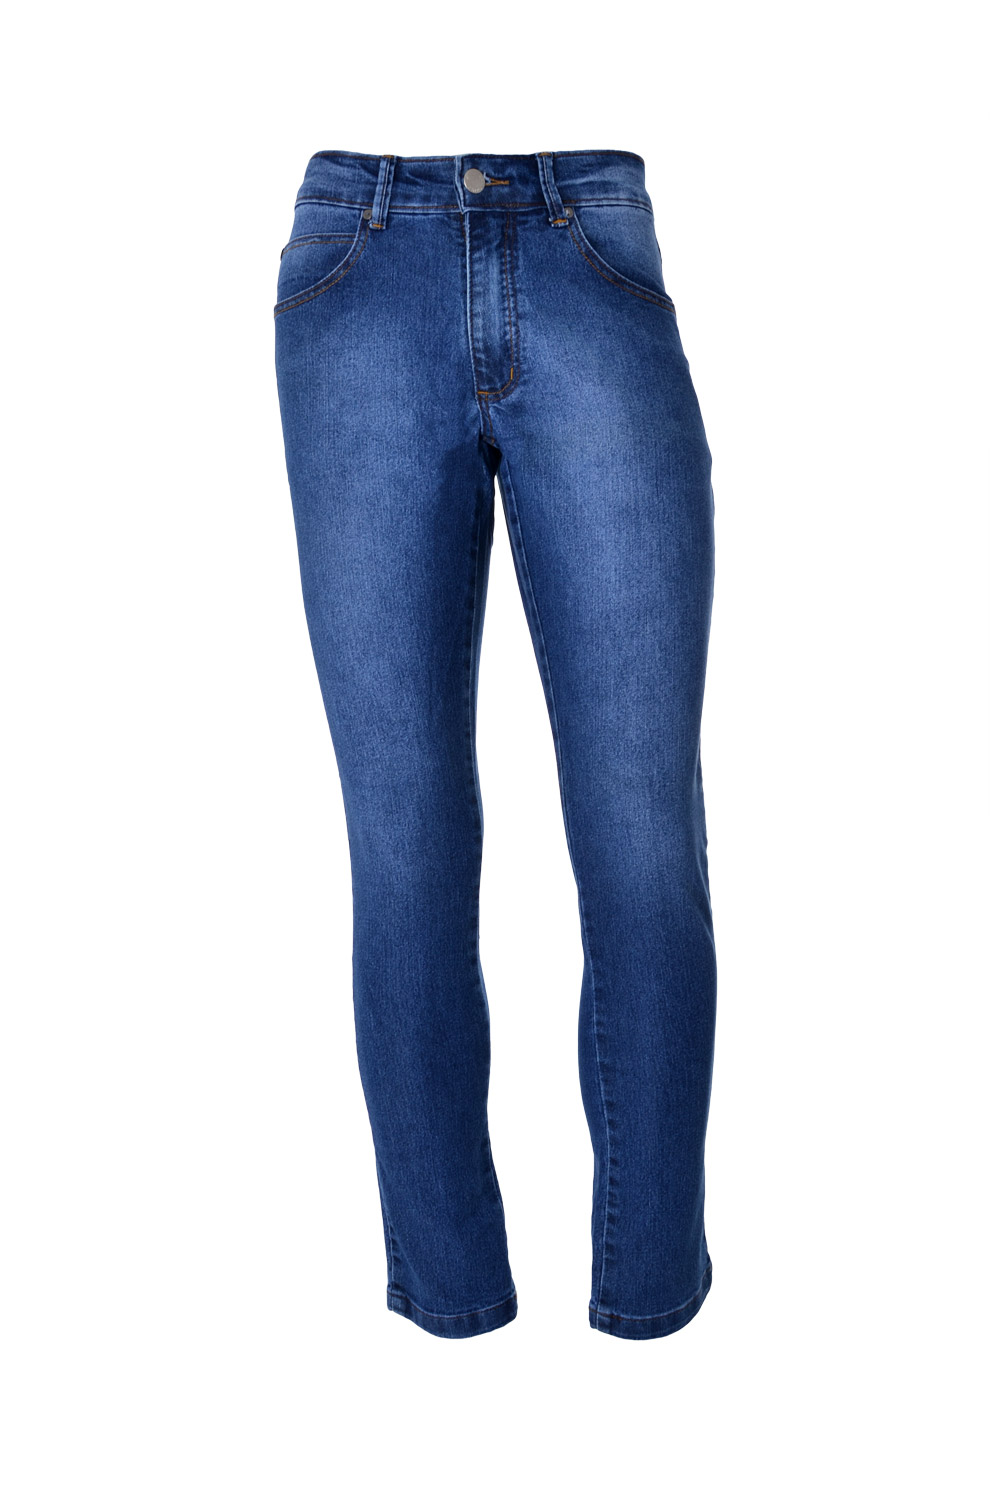 CALÇA JEANS BLUES POLIALGODAO & ELASTANO STRETCH STONED BLUE